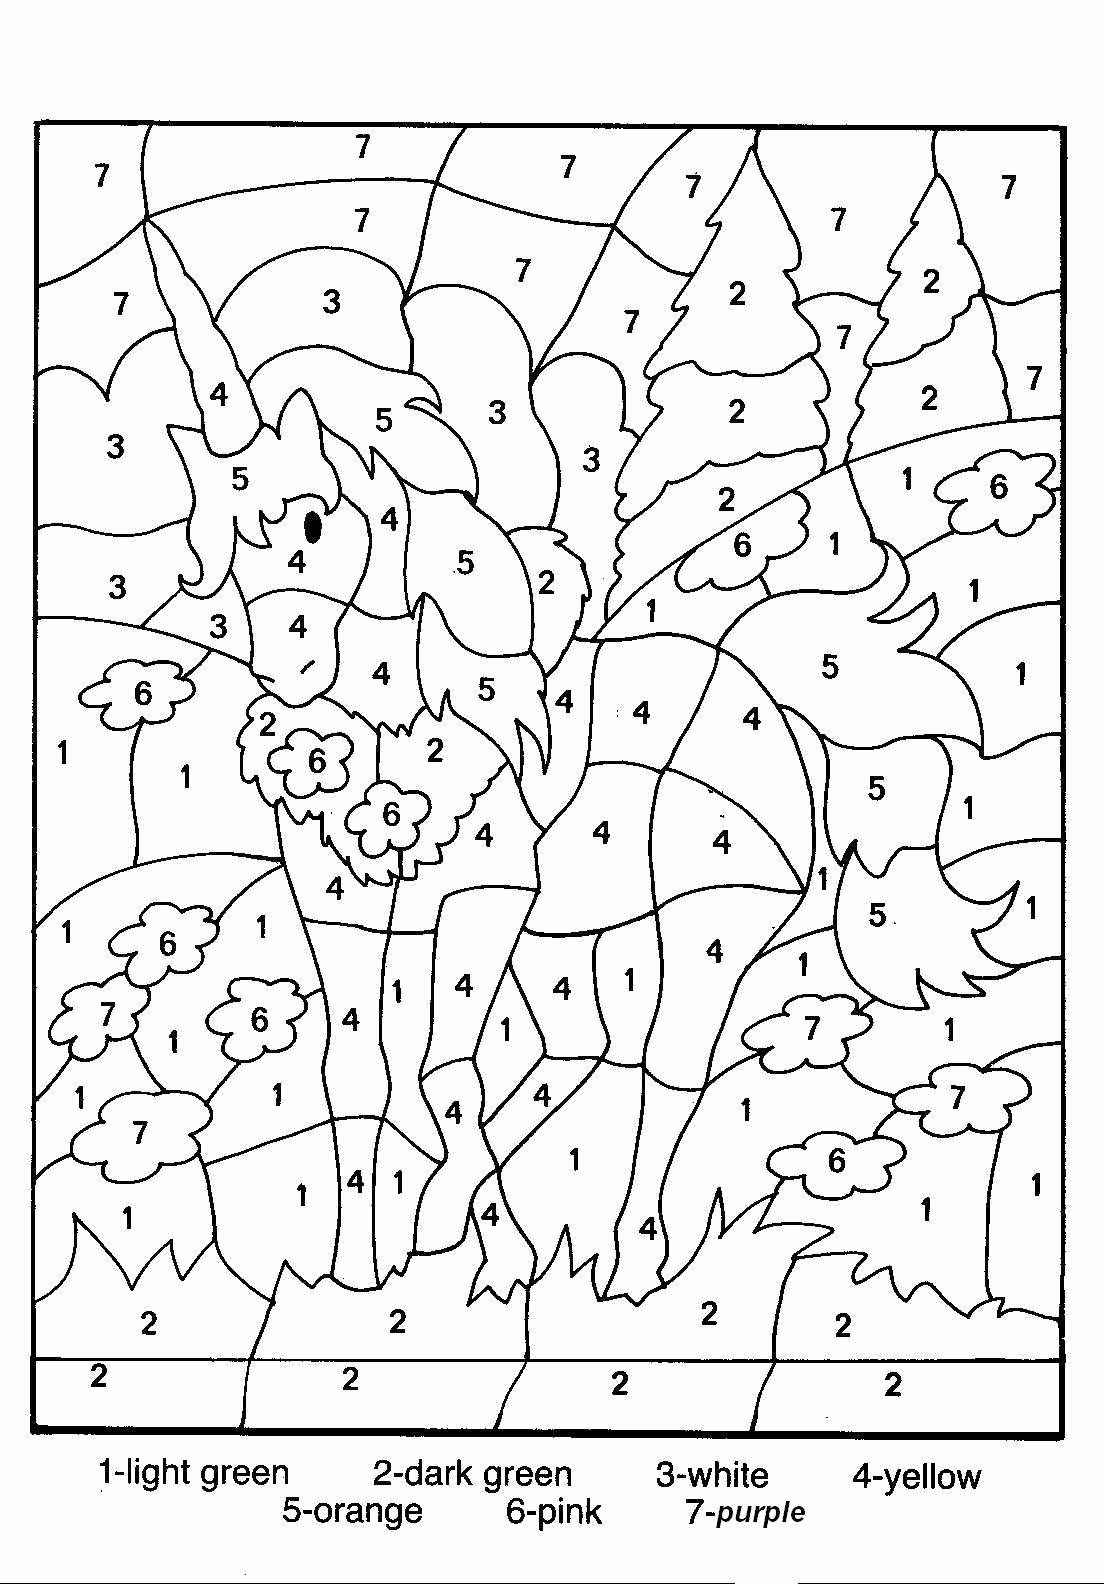 Free Coloring Pages For Kids Printable Hard To Color In 2020 Unicorn Coloring Pages Horse Coloring Pages Free Coloring Pages